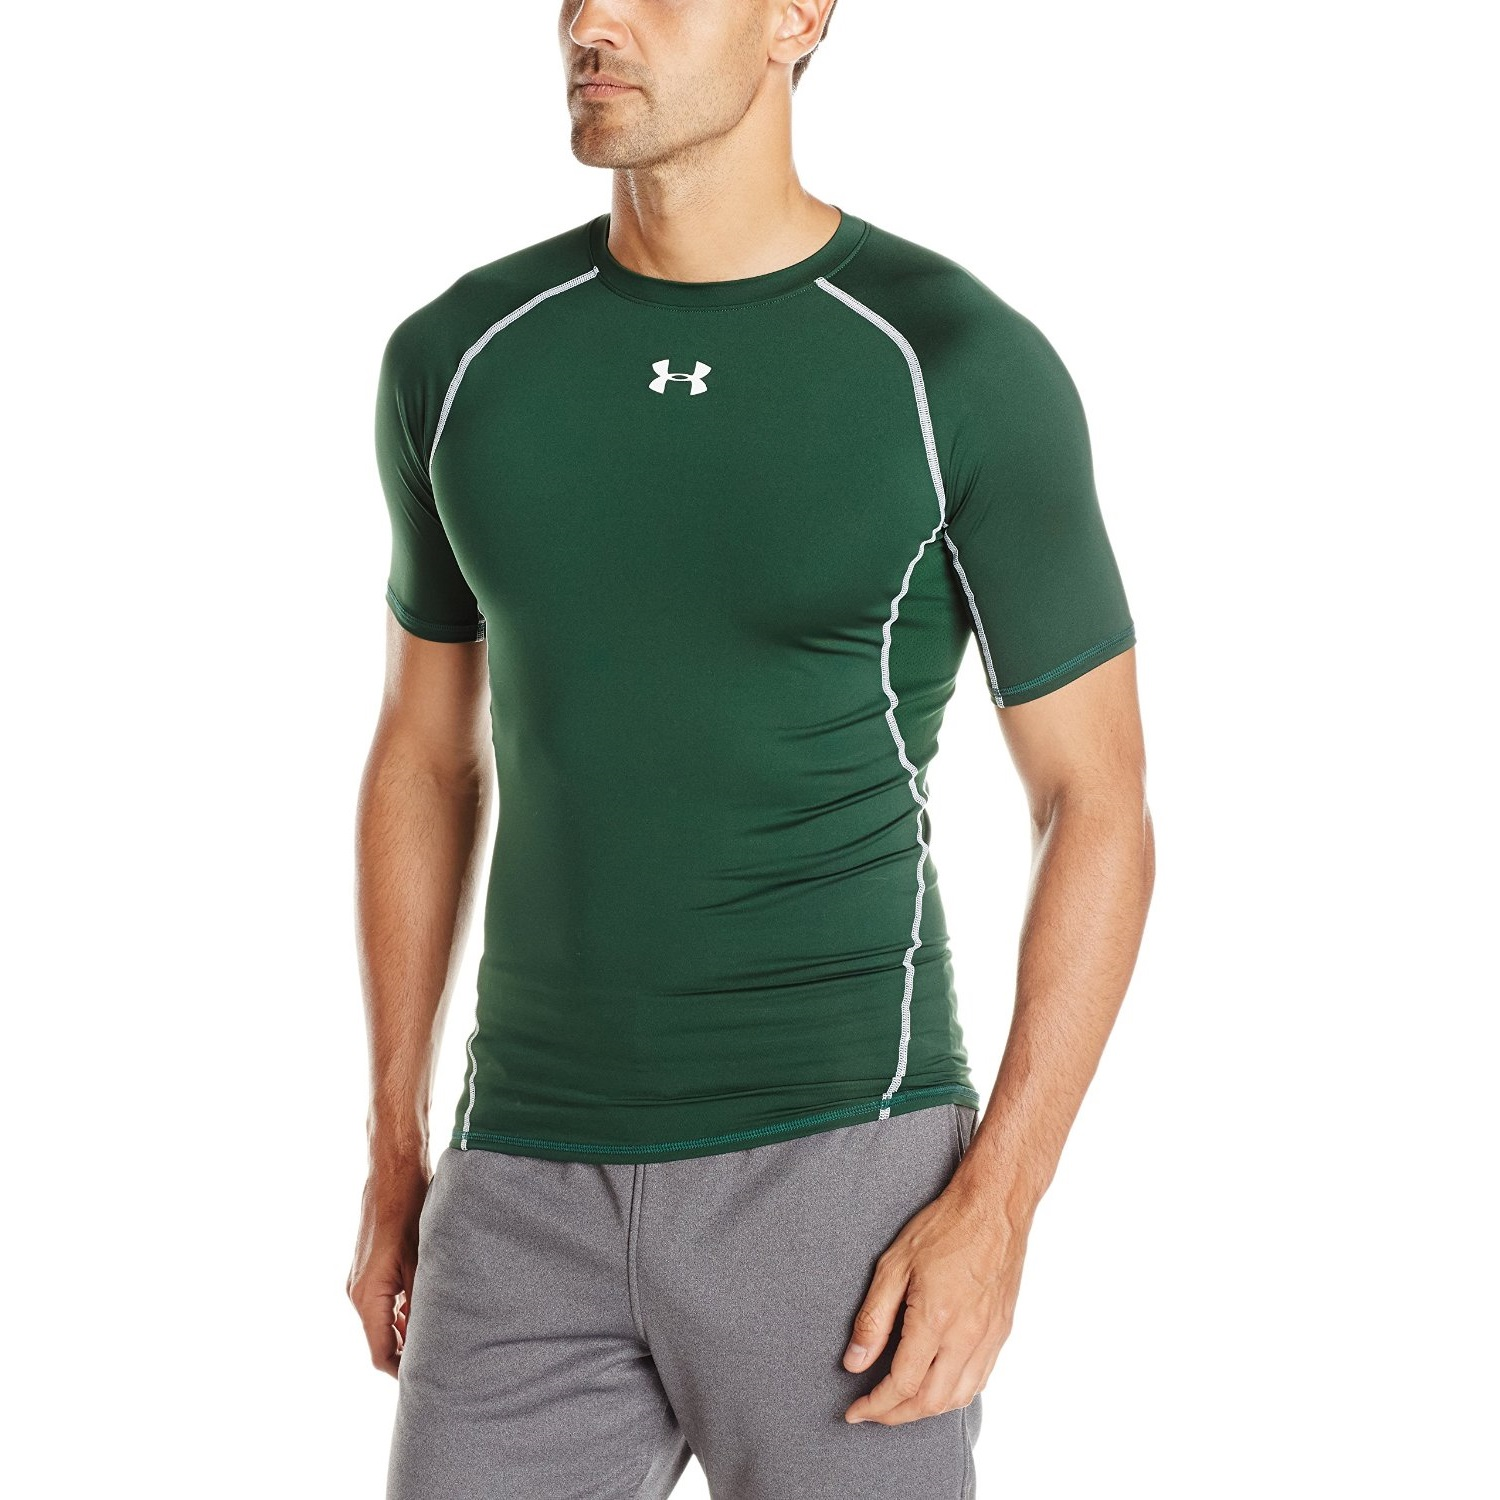 7a98ba562 under armour mens heatgear short sleeve compression forest green/white yoga  shirt